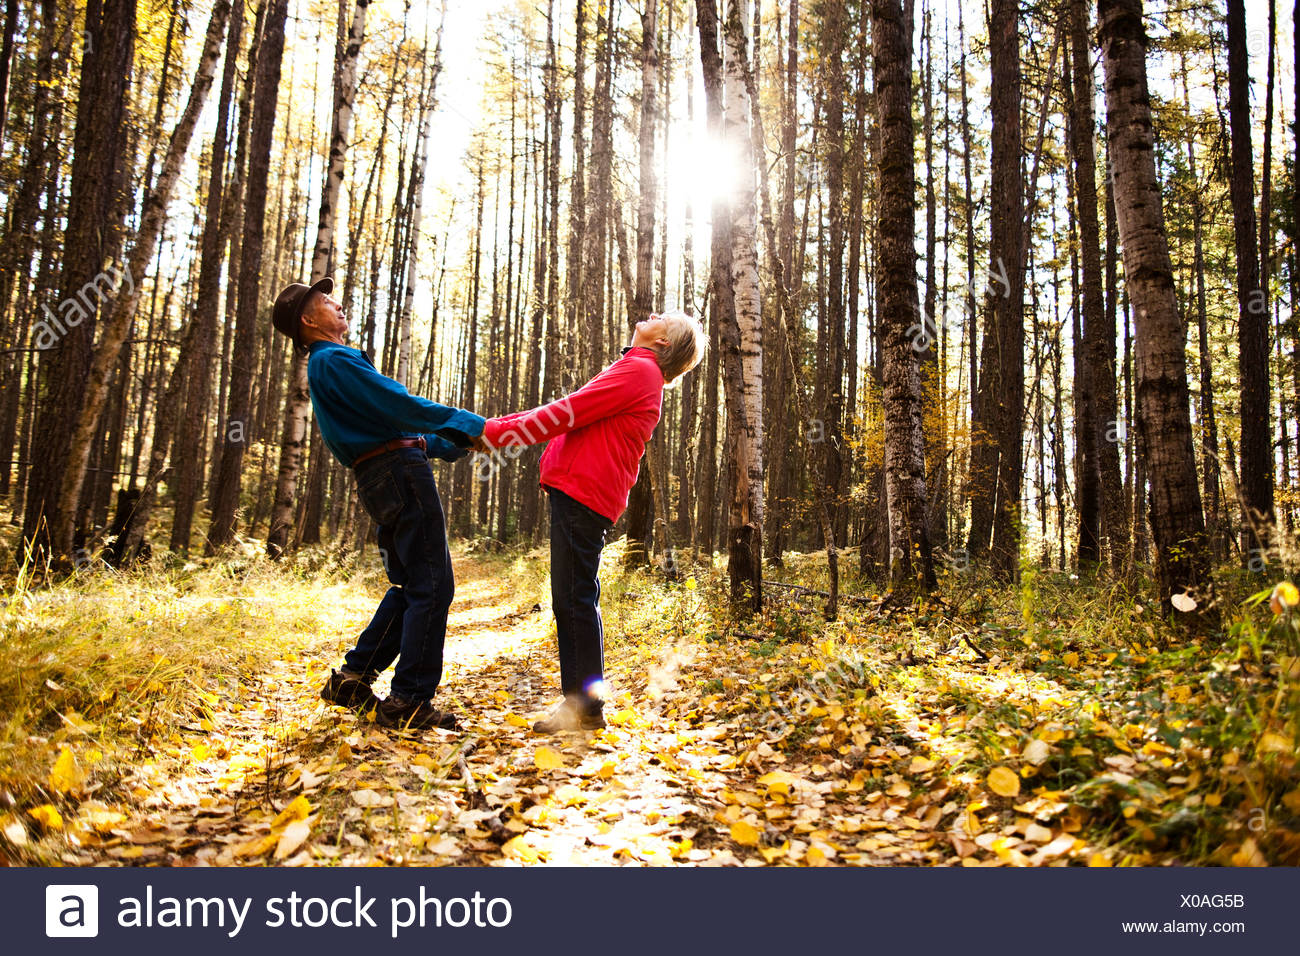 A happy retired couple laughing and smiling while on a hike through a forest during the fall in Idaho. - Stock Image